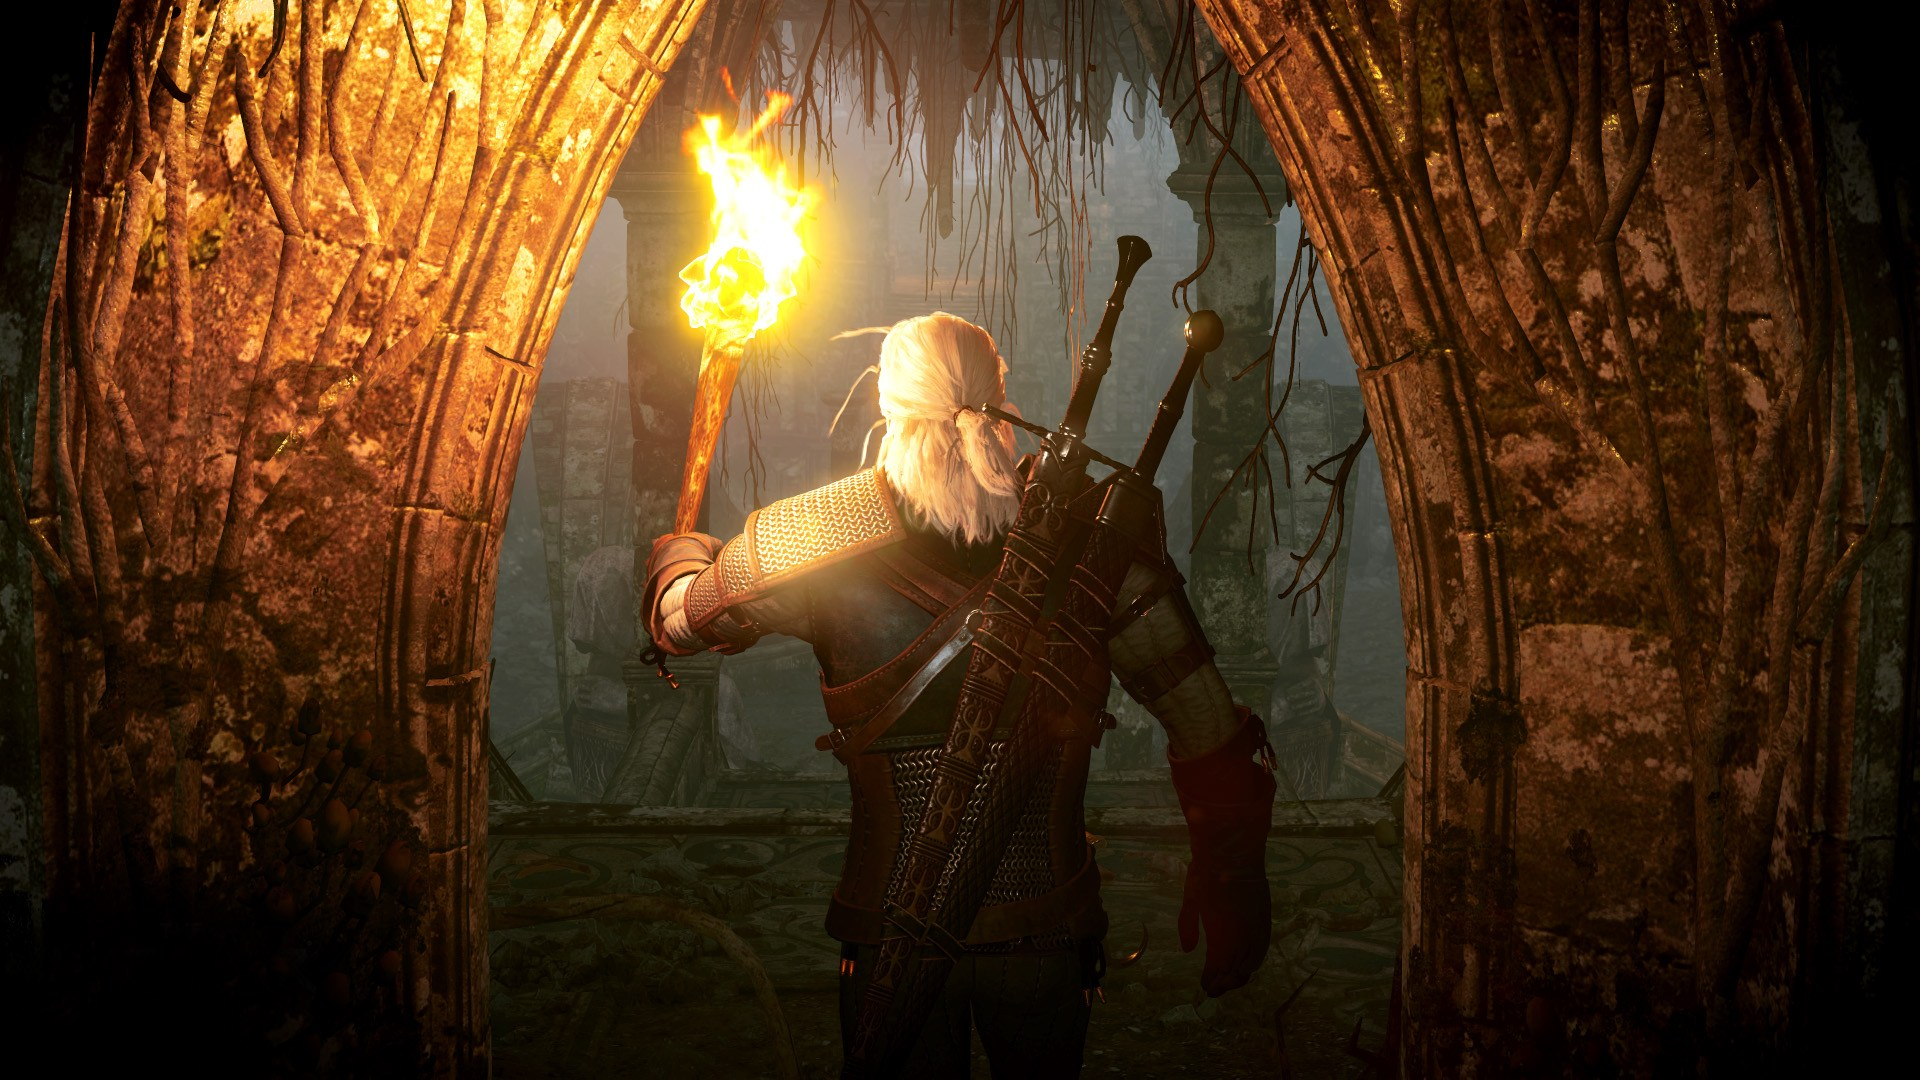 Witcher 1 recreated in witcher 3 – Game Breaking News